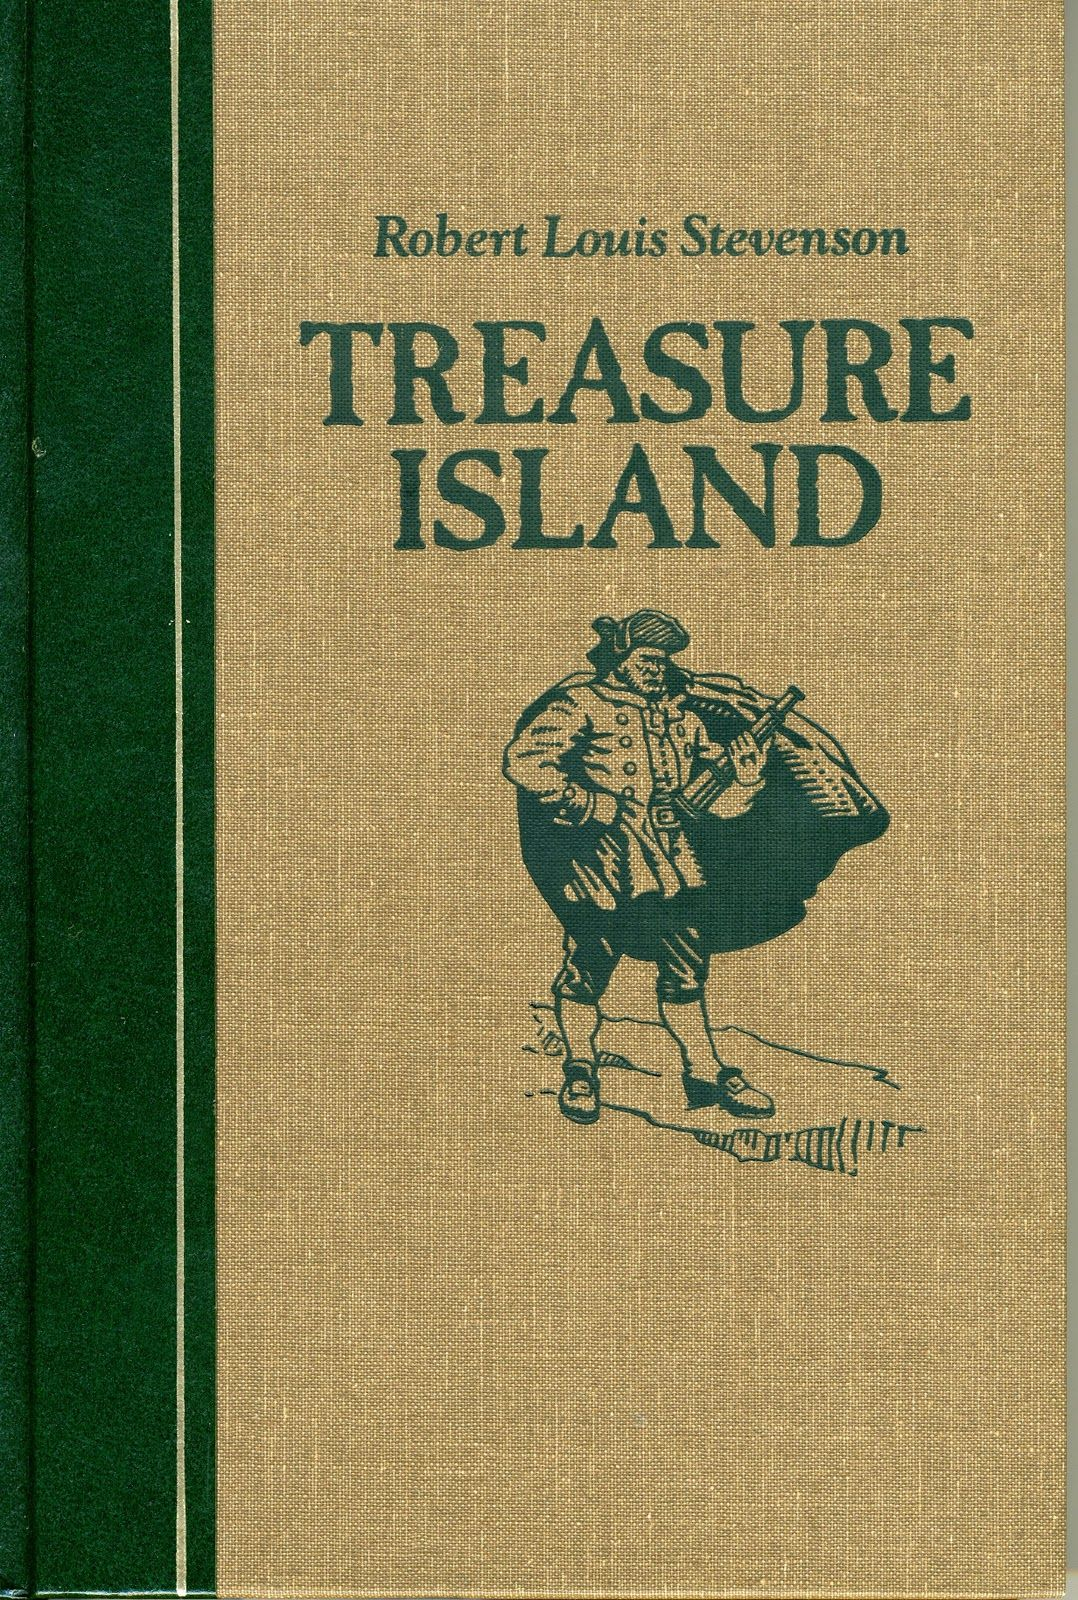 treasure island by robert louis stevenson book cover google treasure island by robert louis stevenson book cover google search